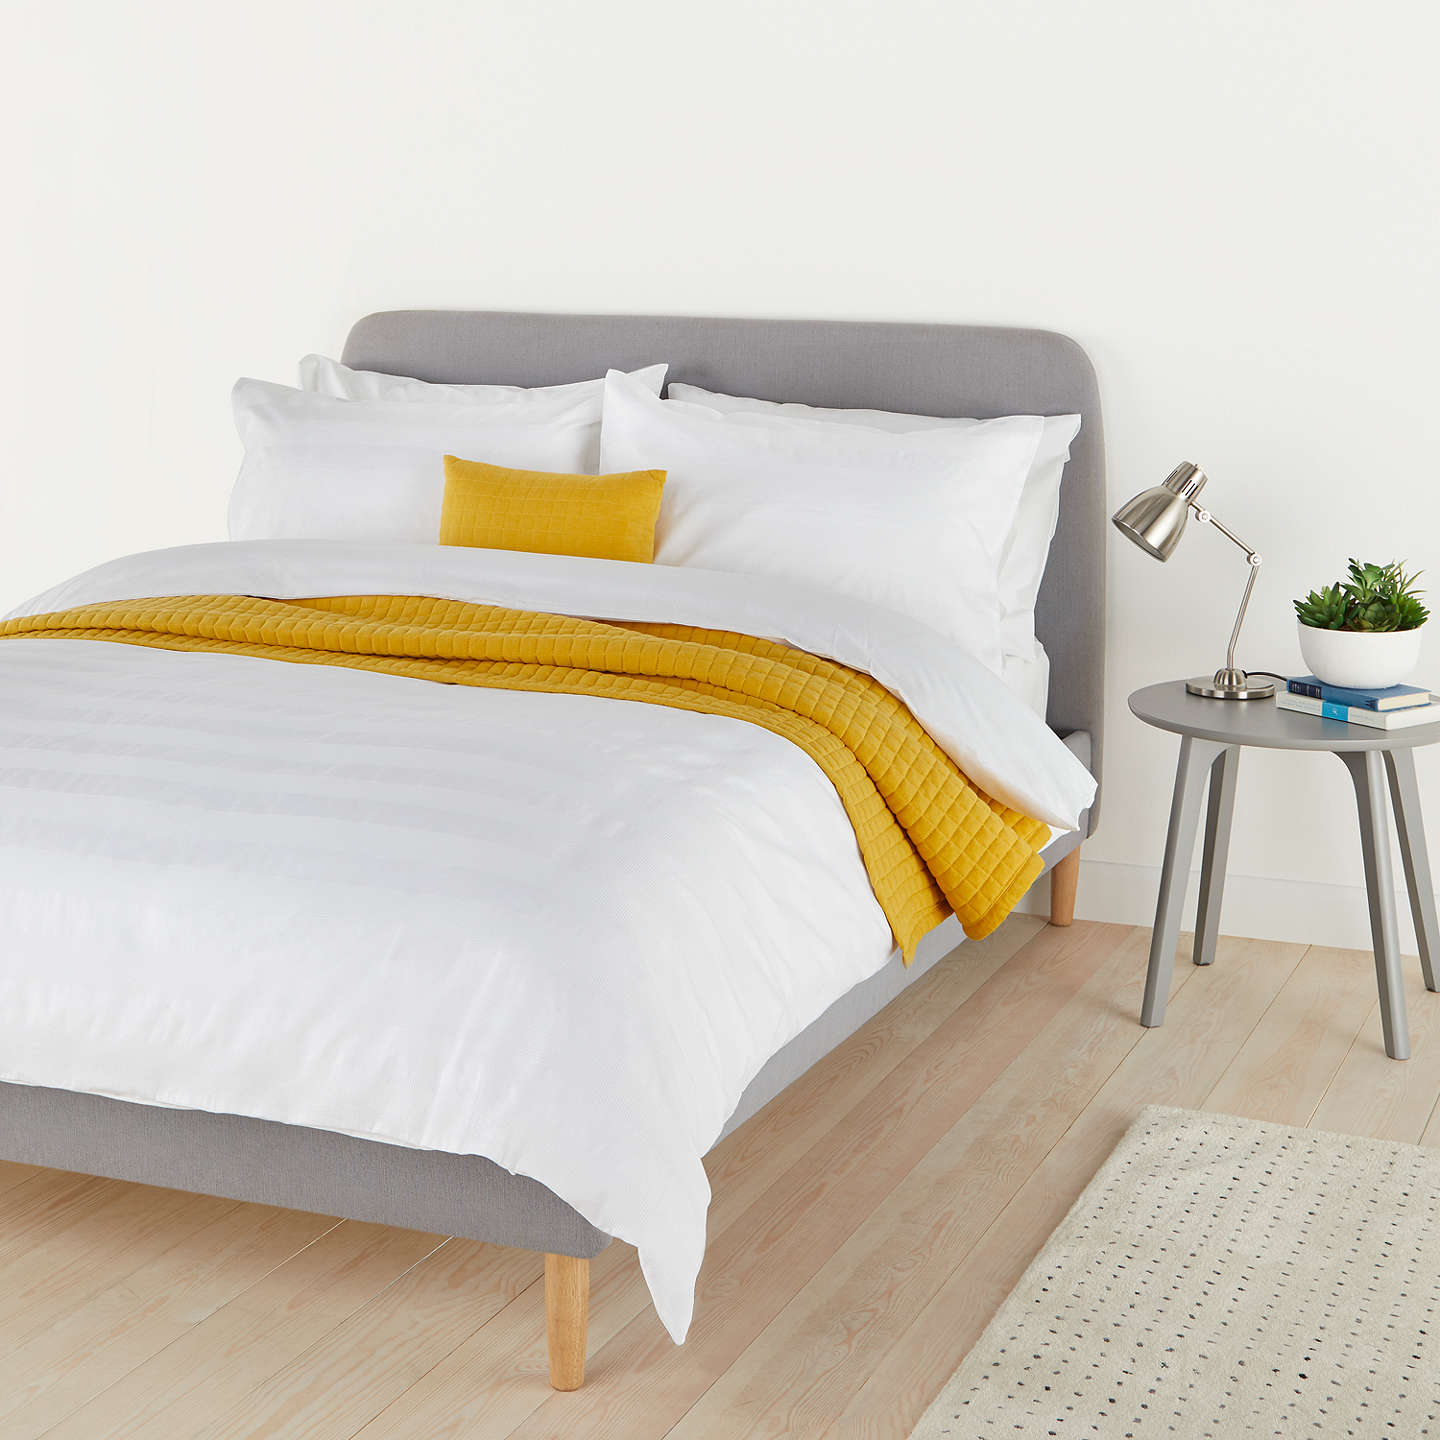 BuyHouse by John Lewis Waffle Stripe Duvet Cover and Pillowcase Set, Single, White Online at johnlewis.com